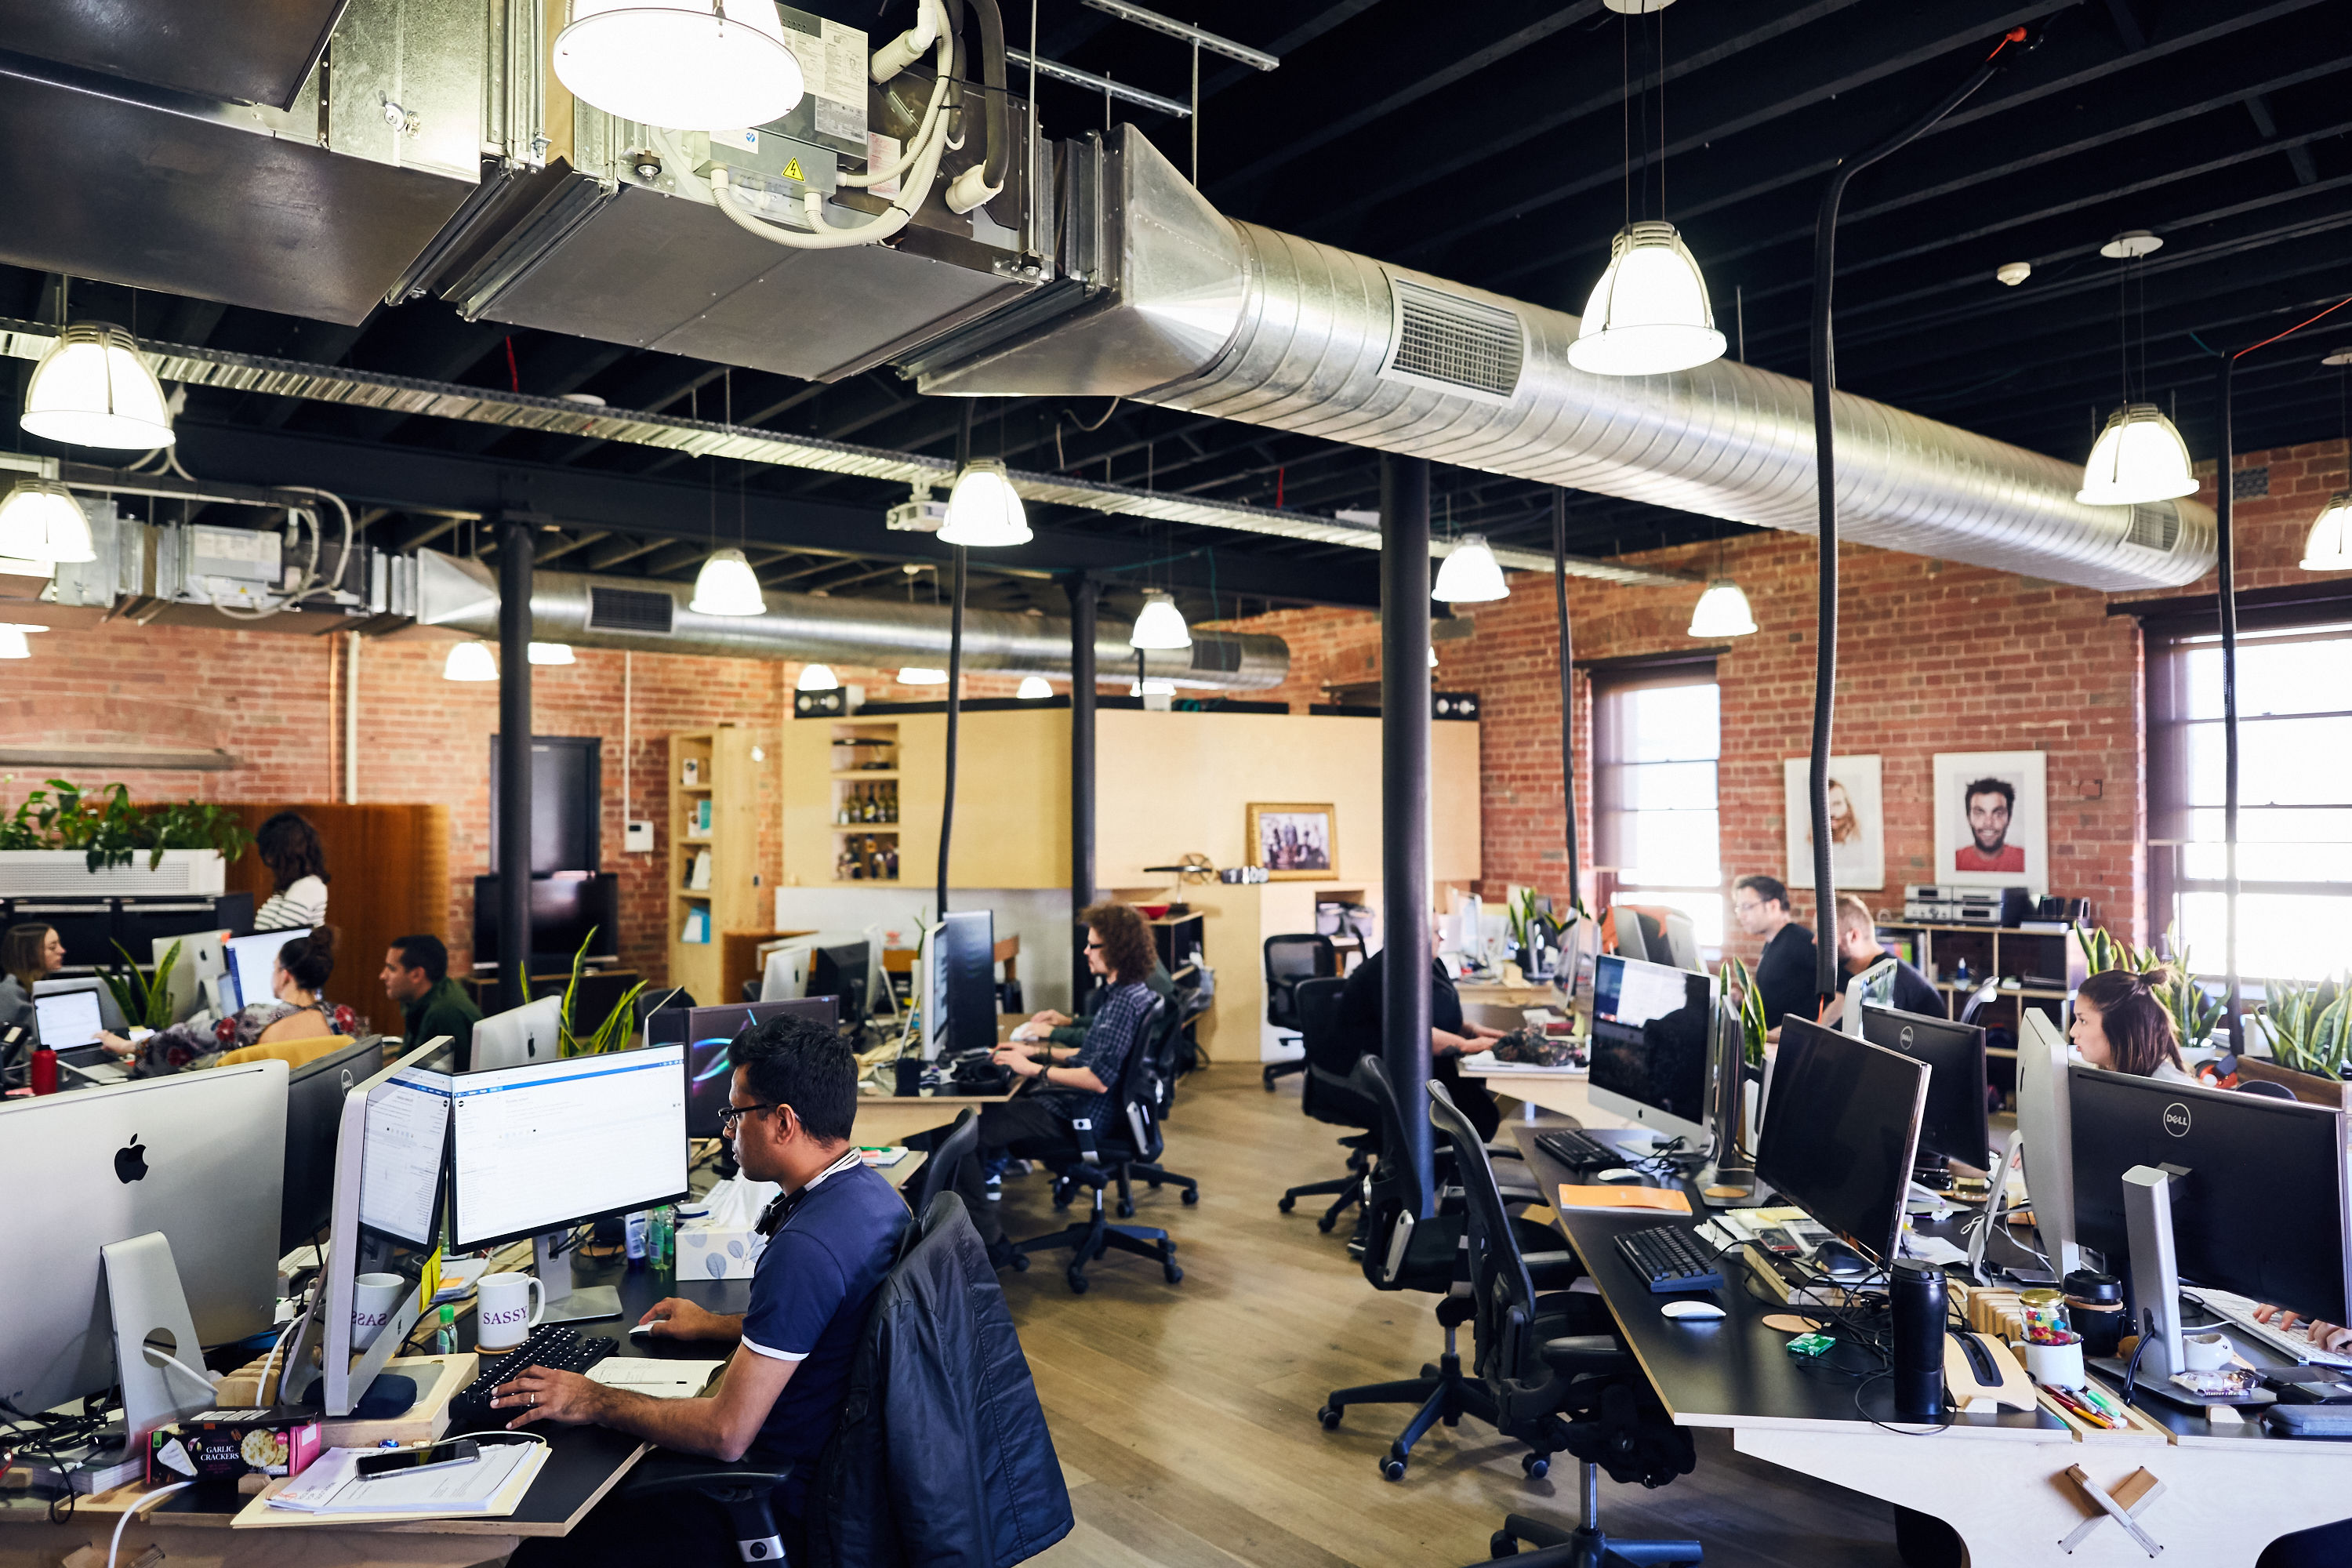 Photo of people working in a warehouse converted office